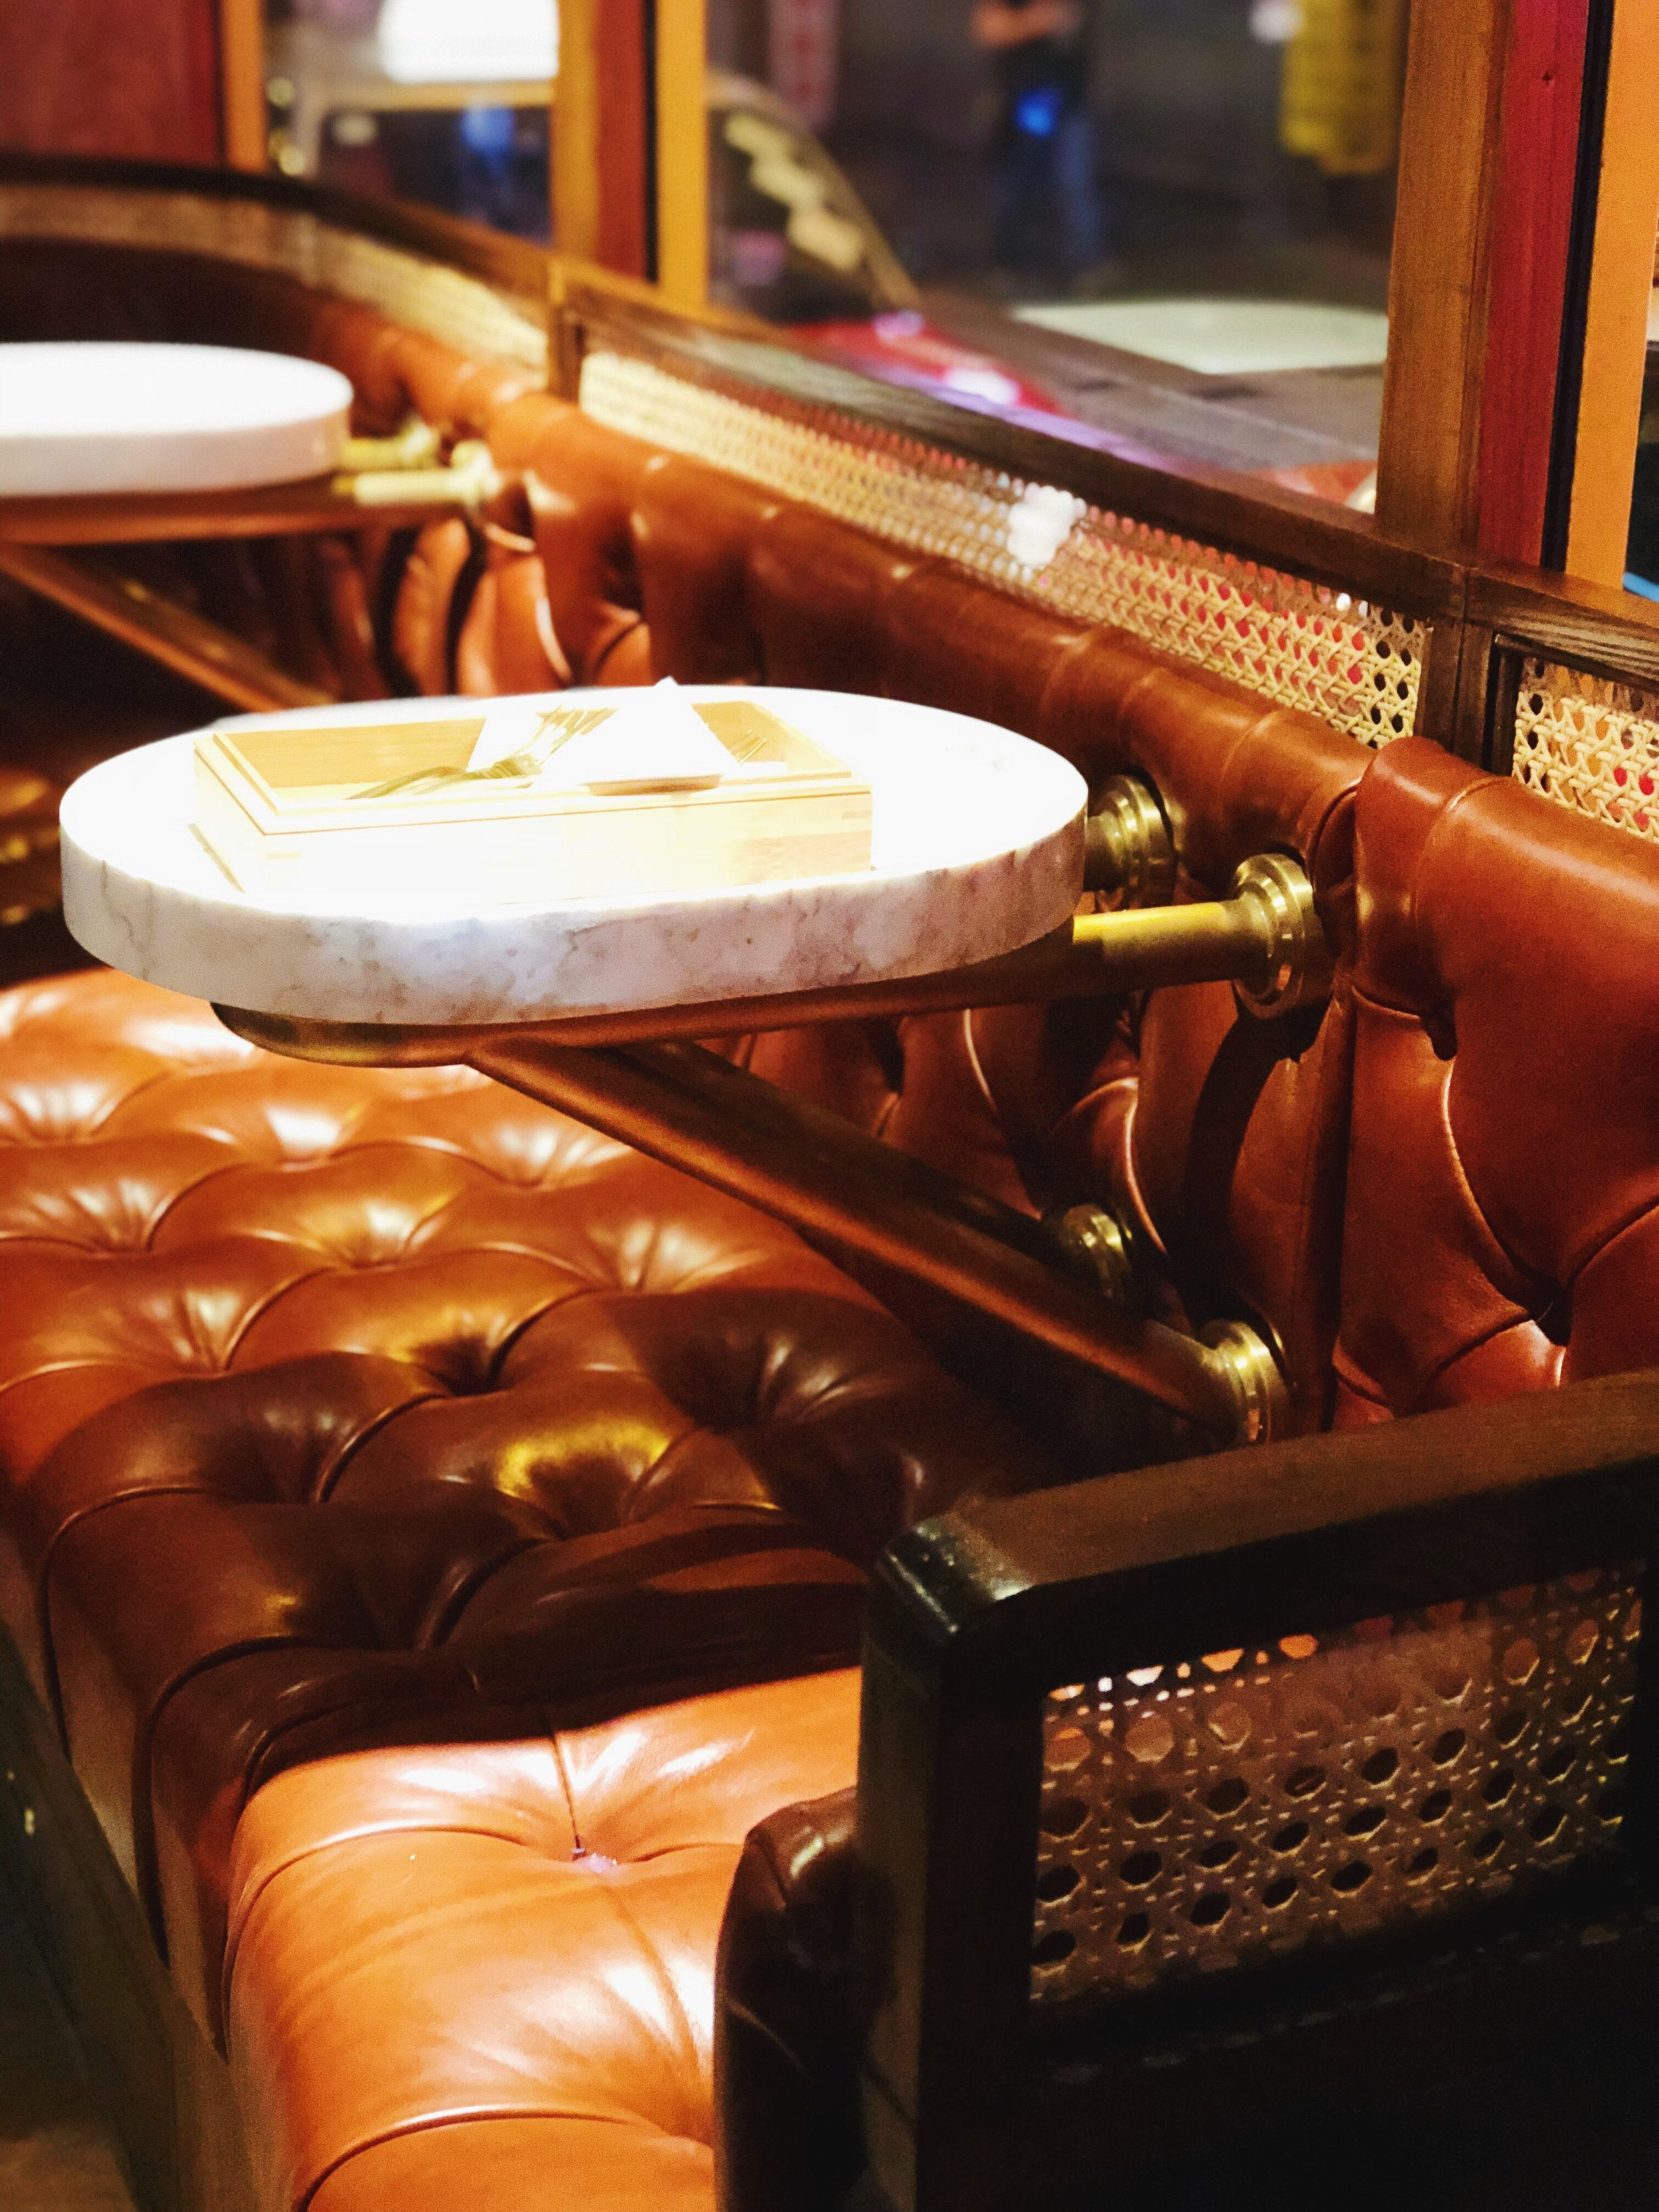 Lower Deck (Chatham House ): Can't resist the leather seats!